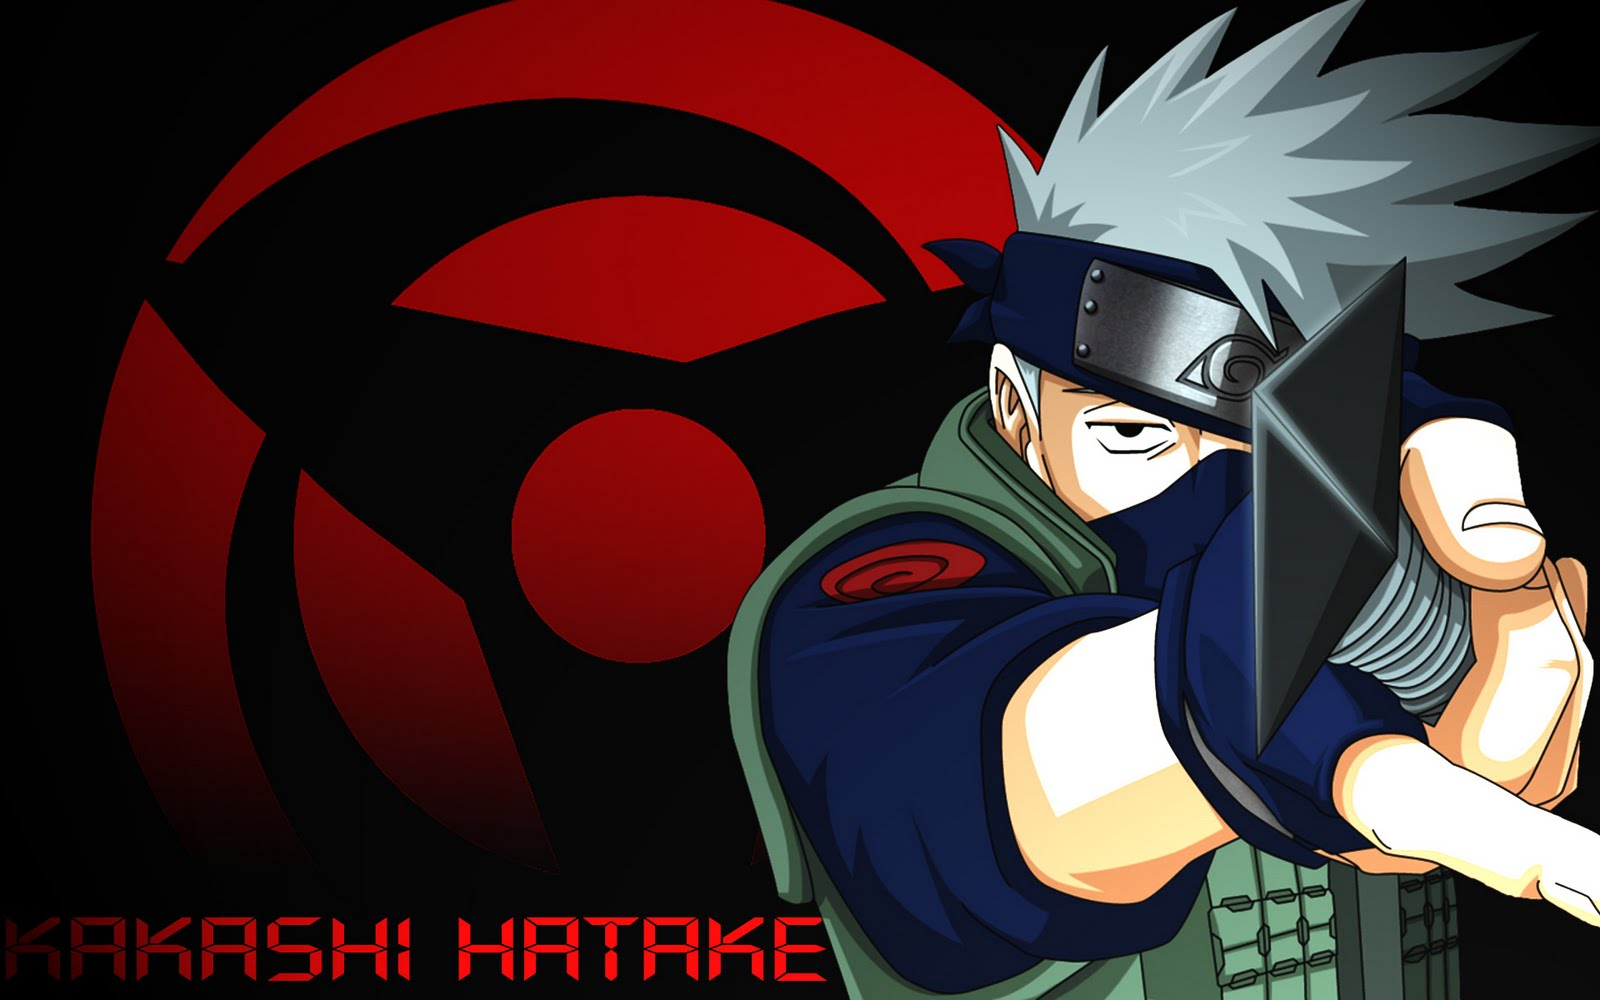 Kakashi Hatake Wallpaper by banditajj4wallpaperart